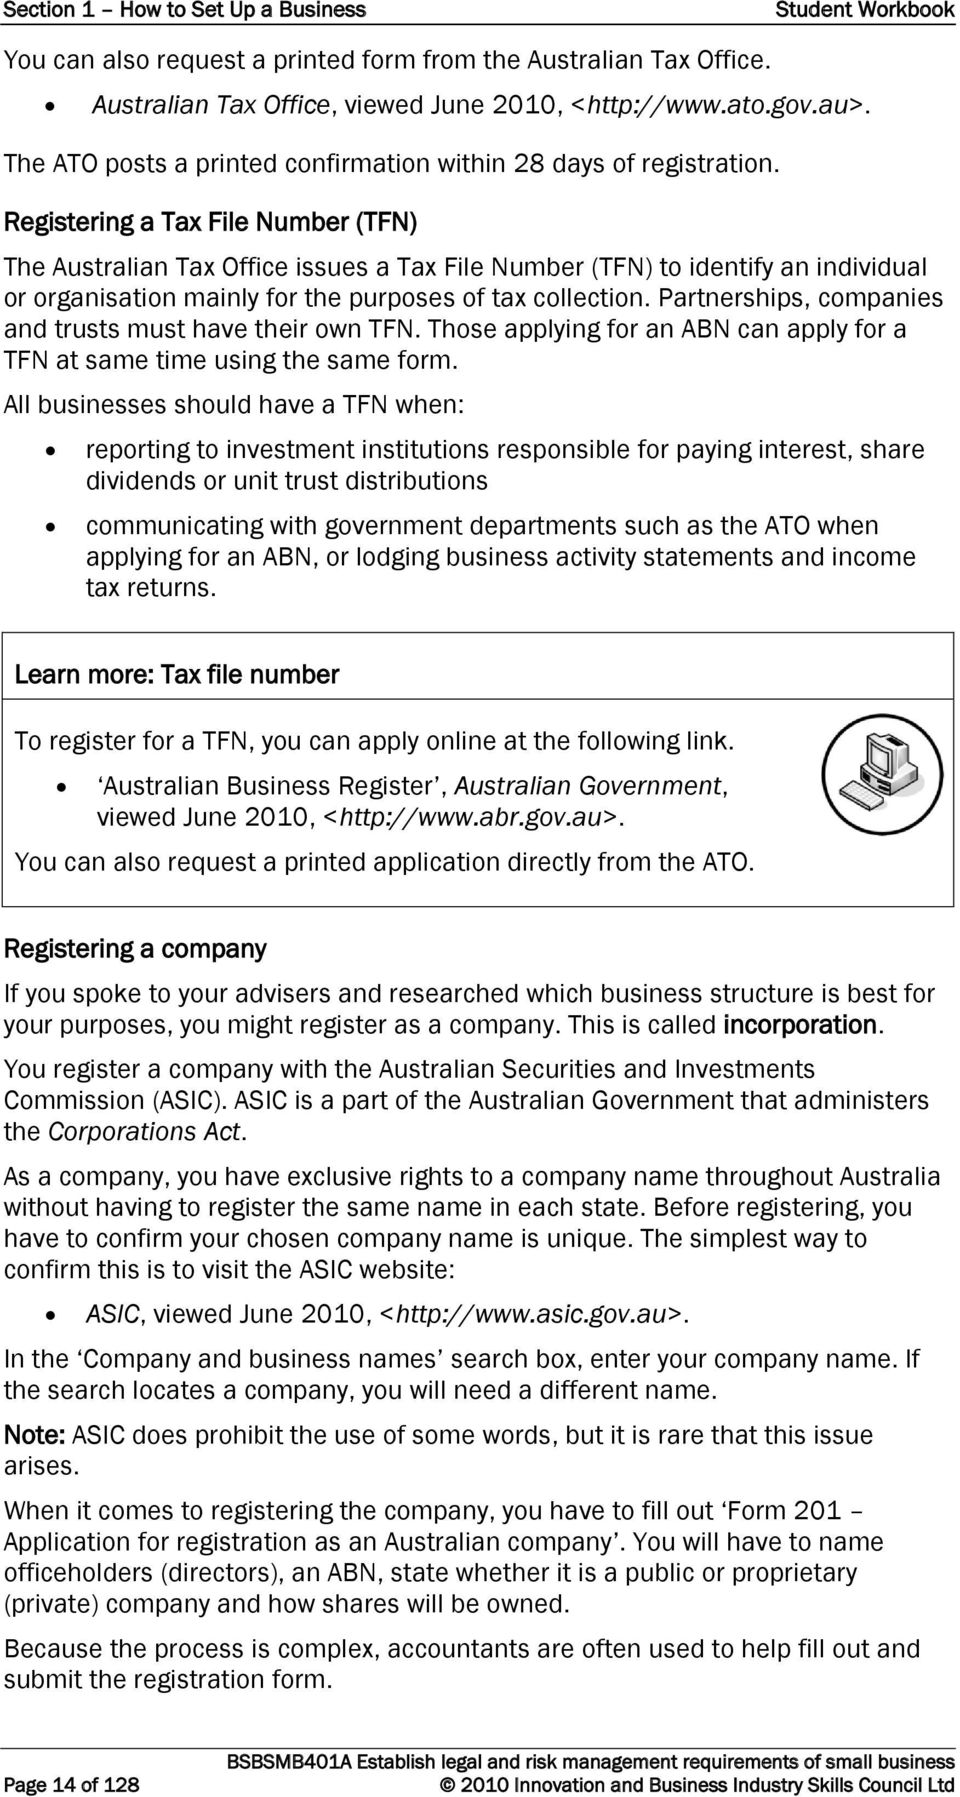 Registering a Tax File Number (TFN) The Australian Tax Office issues a Tax File Number (TFN) to identify an individual or organisation mainly for the purposes of tax collection.